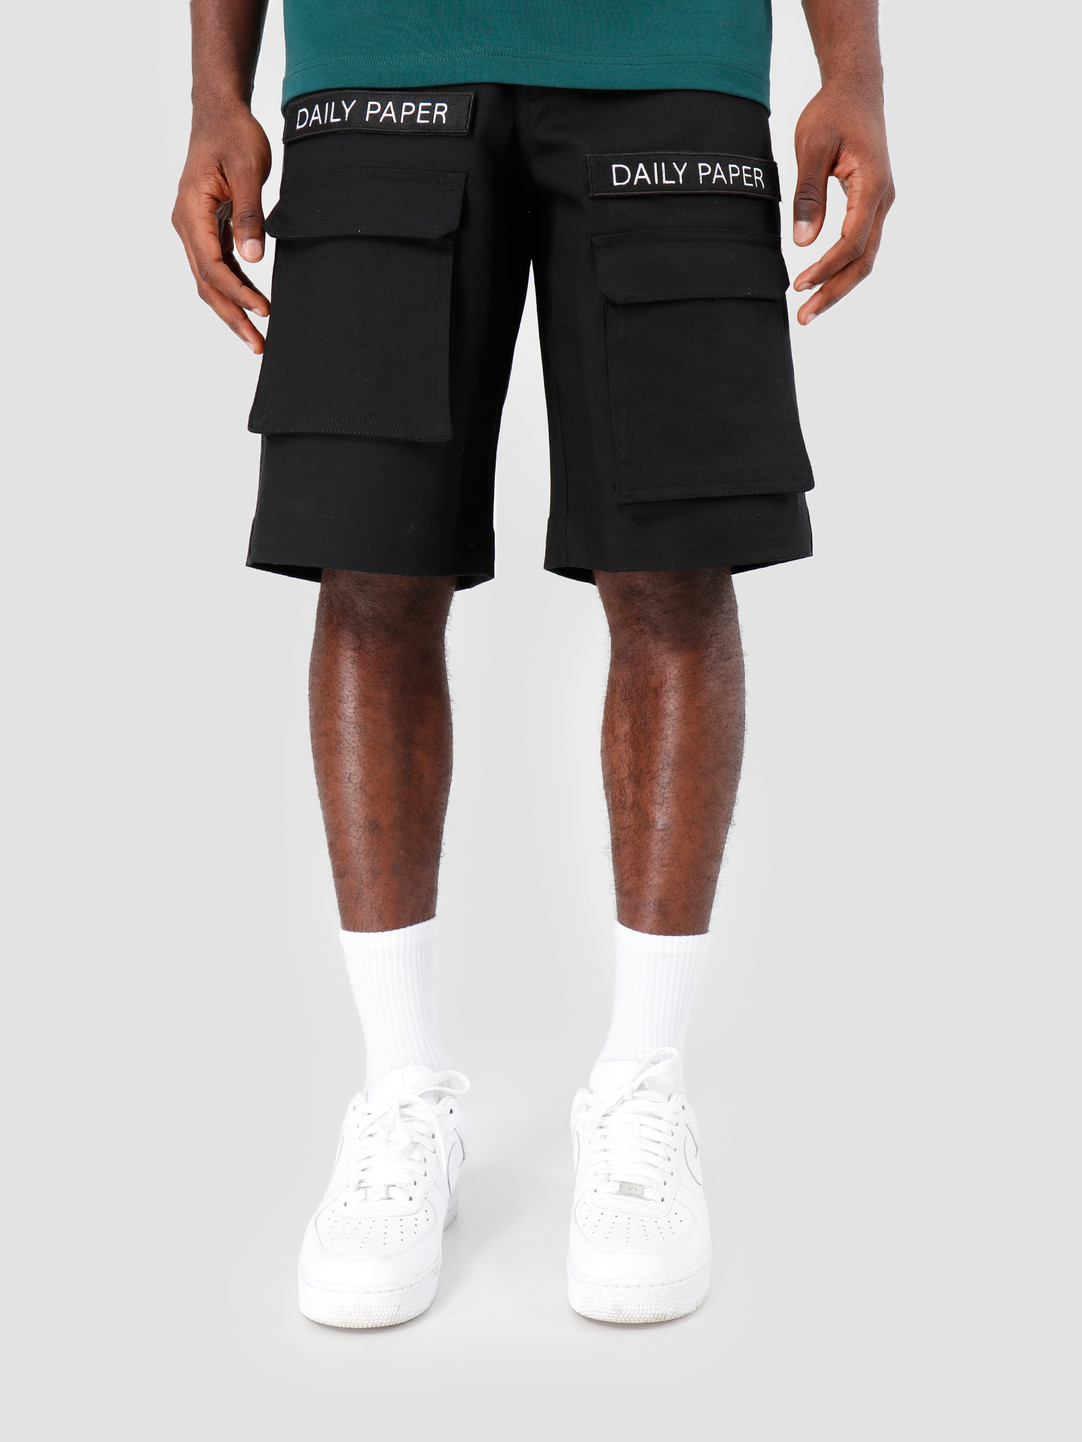 Daily Paper Daily Paper Resort Cargo Short Black 19R1SH01-02